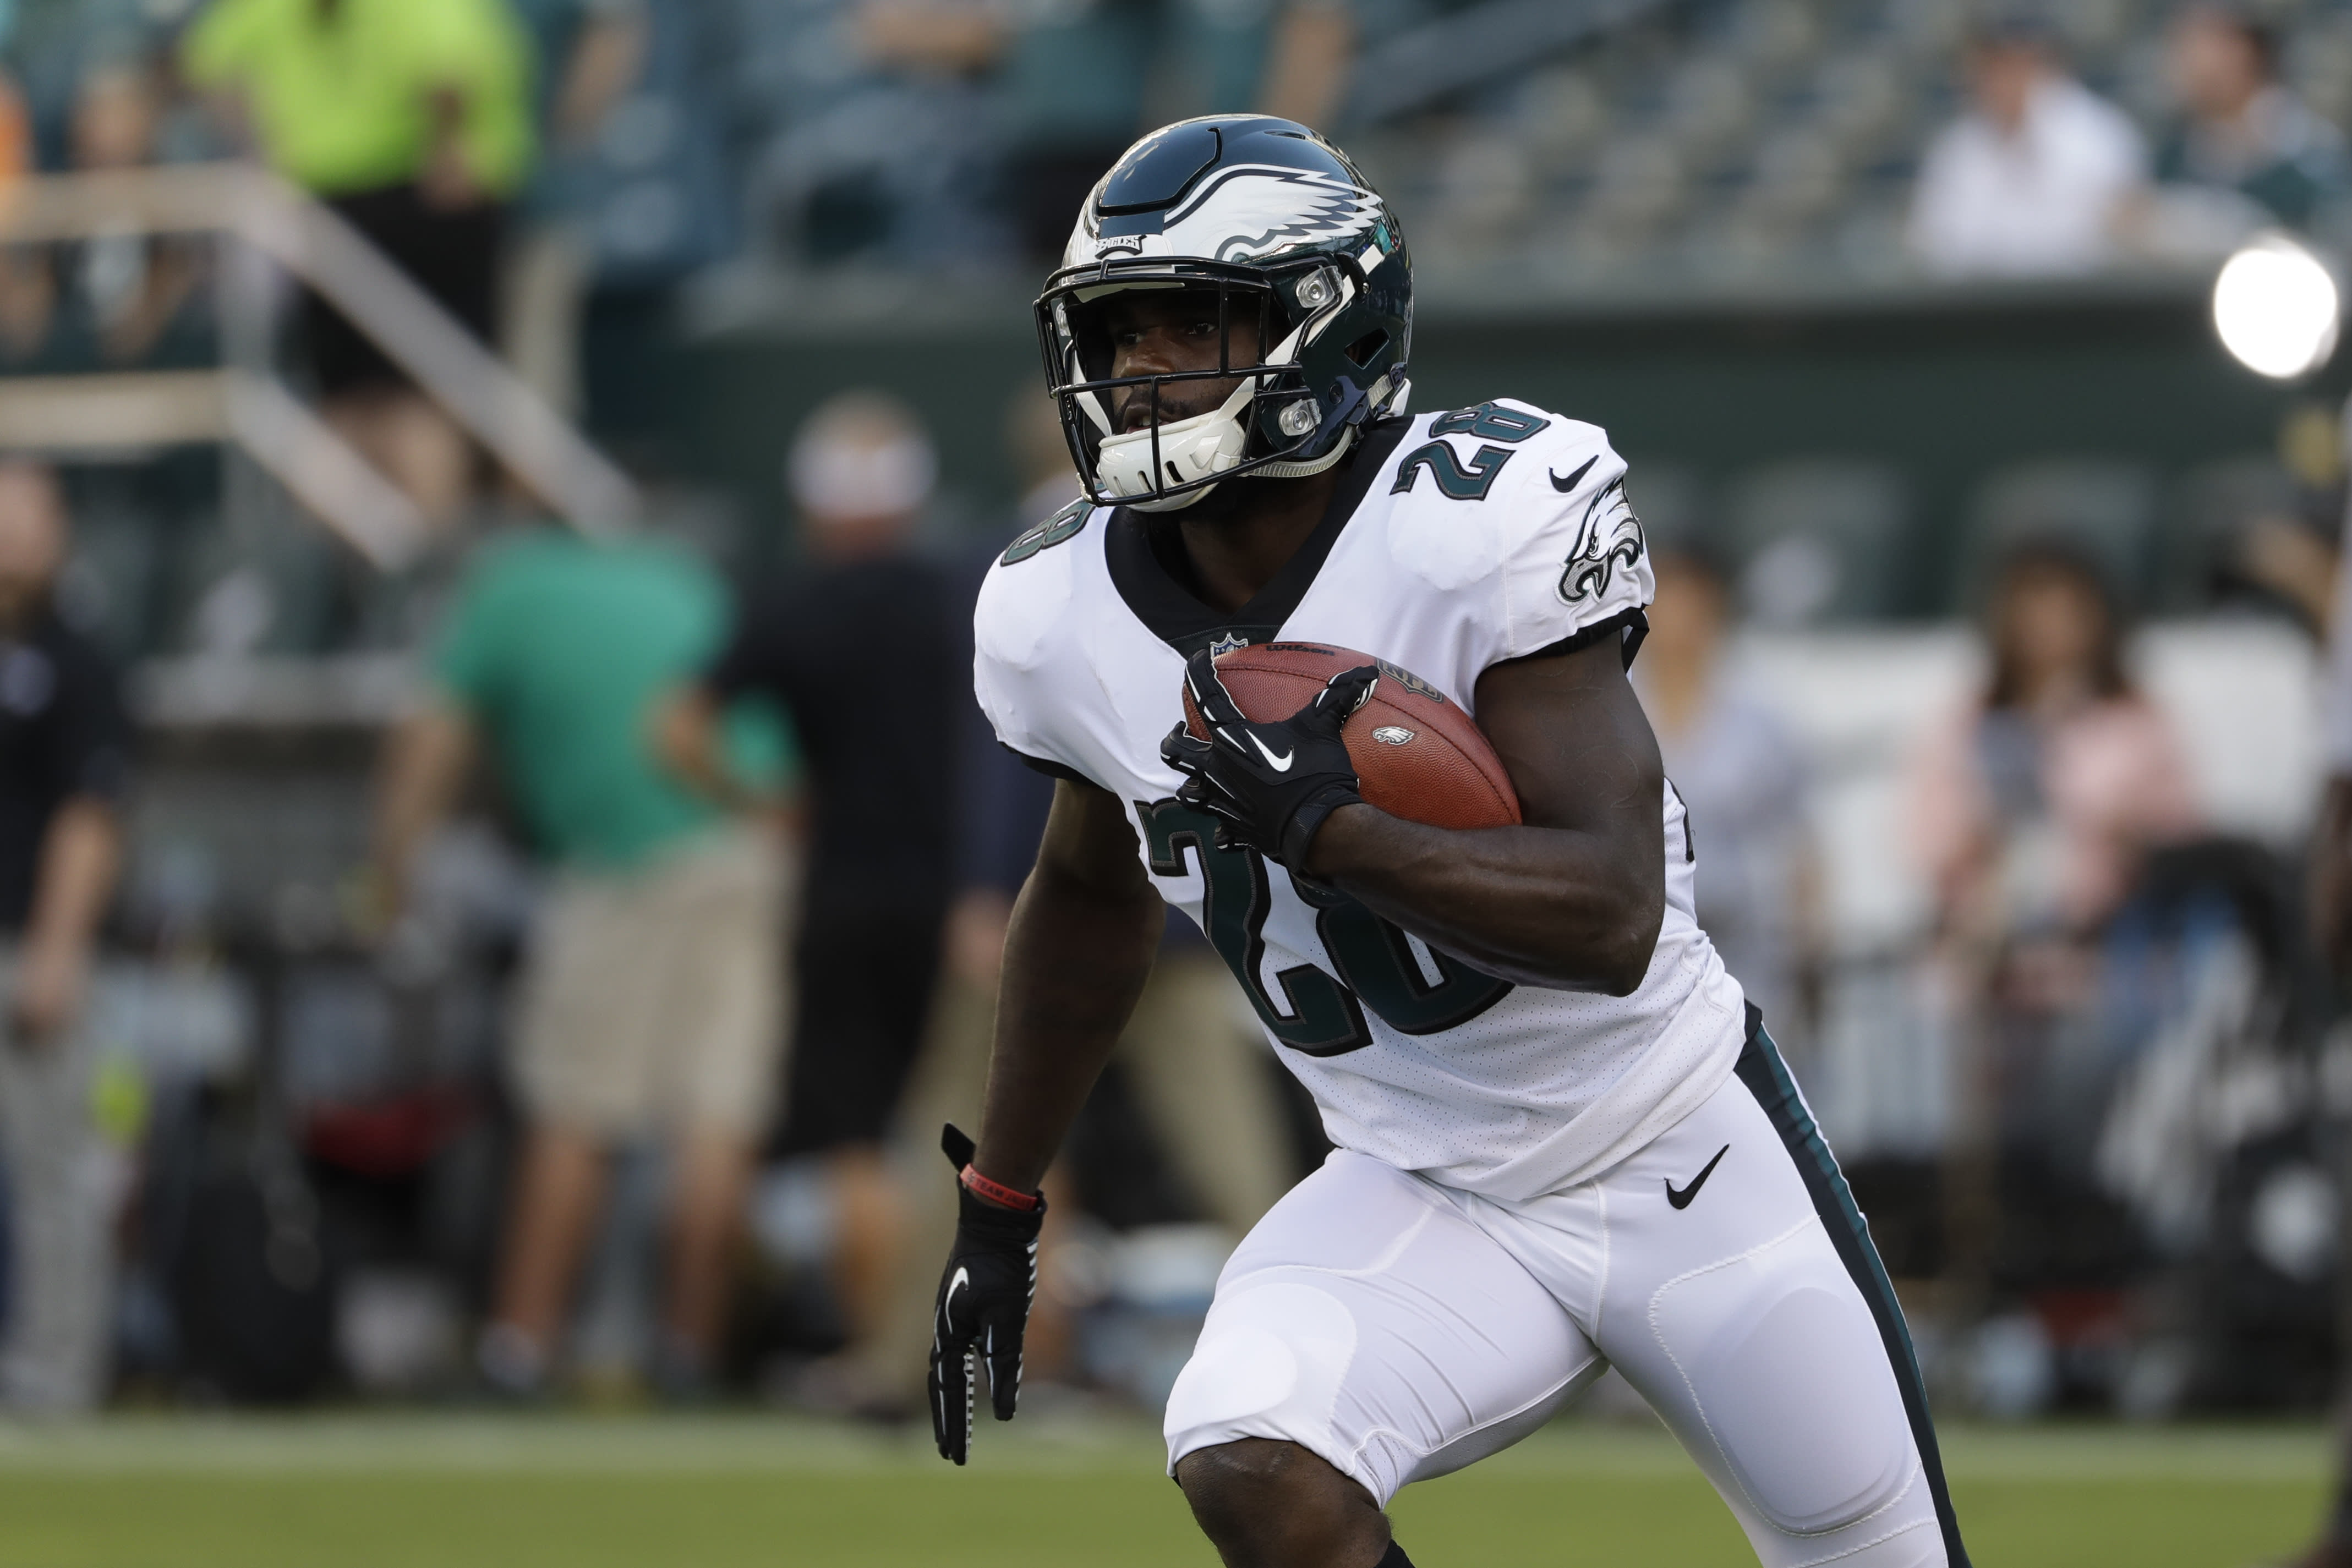 Week 4 fantasy pickups: Smallwood, Shepard highlight adds